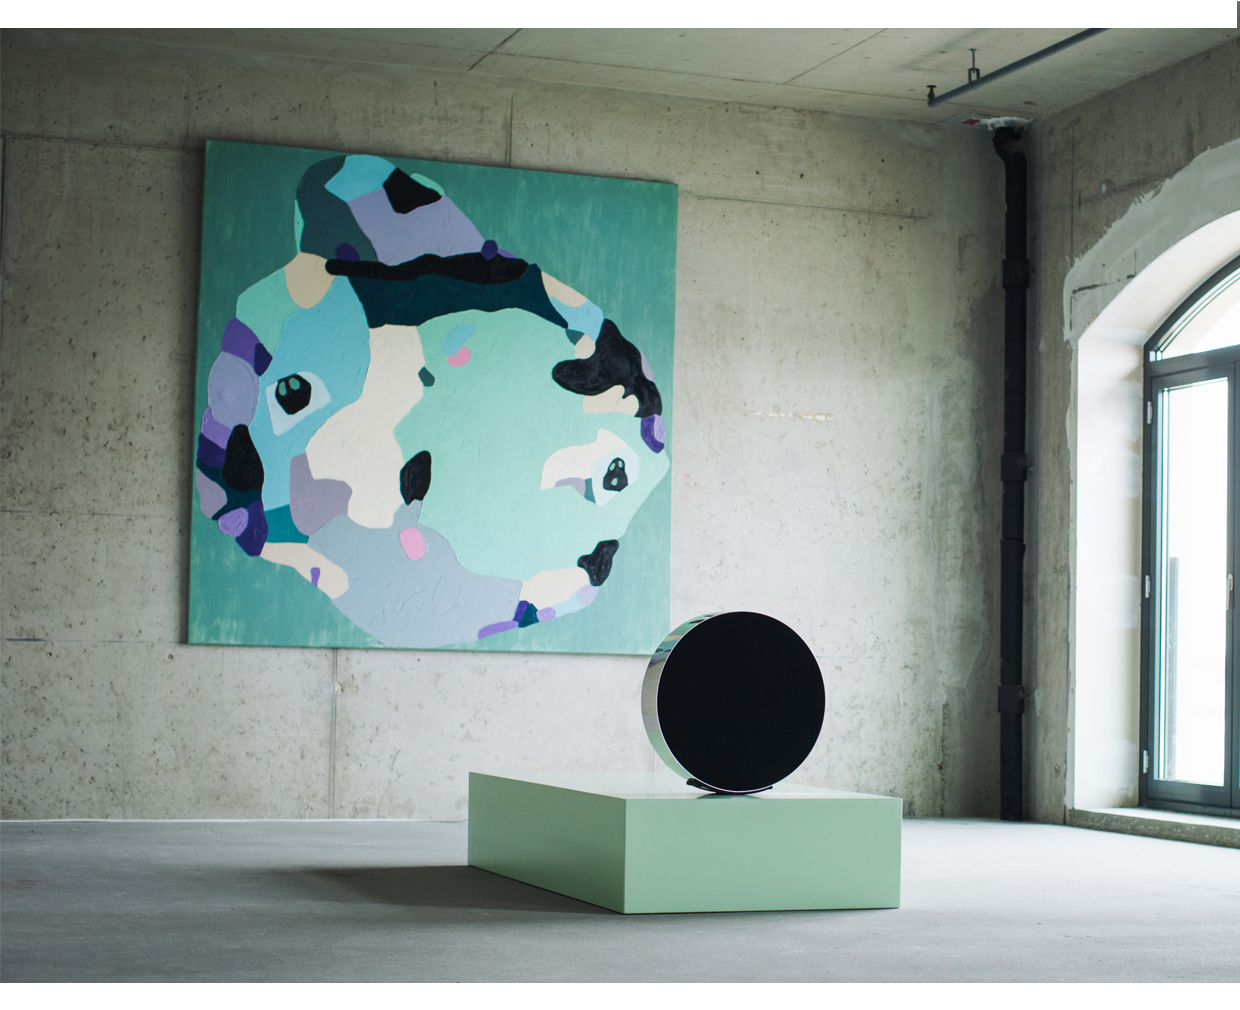 TRIPTYCH – COLLABORATION WITH BANG&OLUFSEN AND IAMYANK